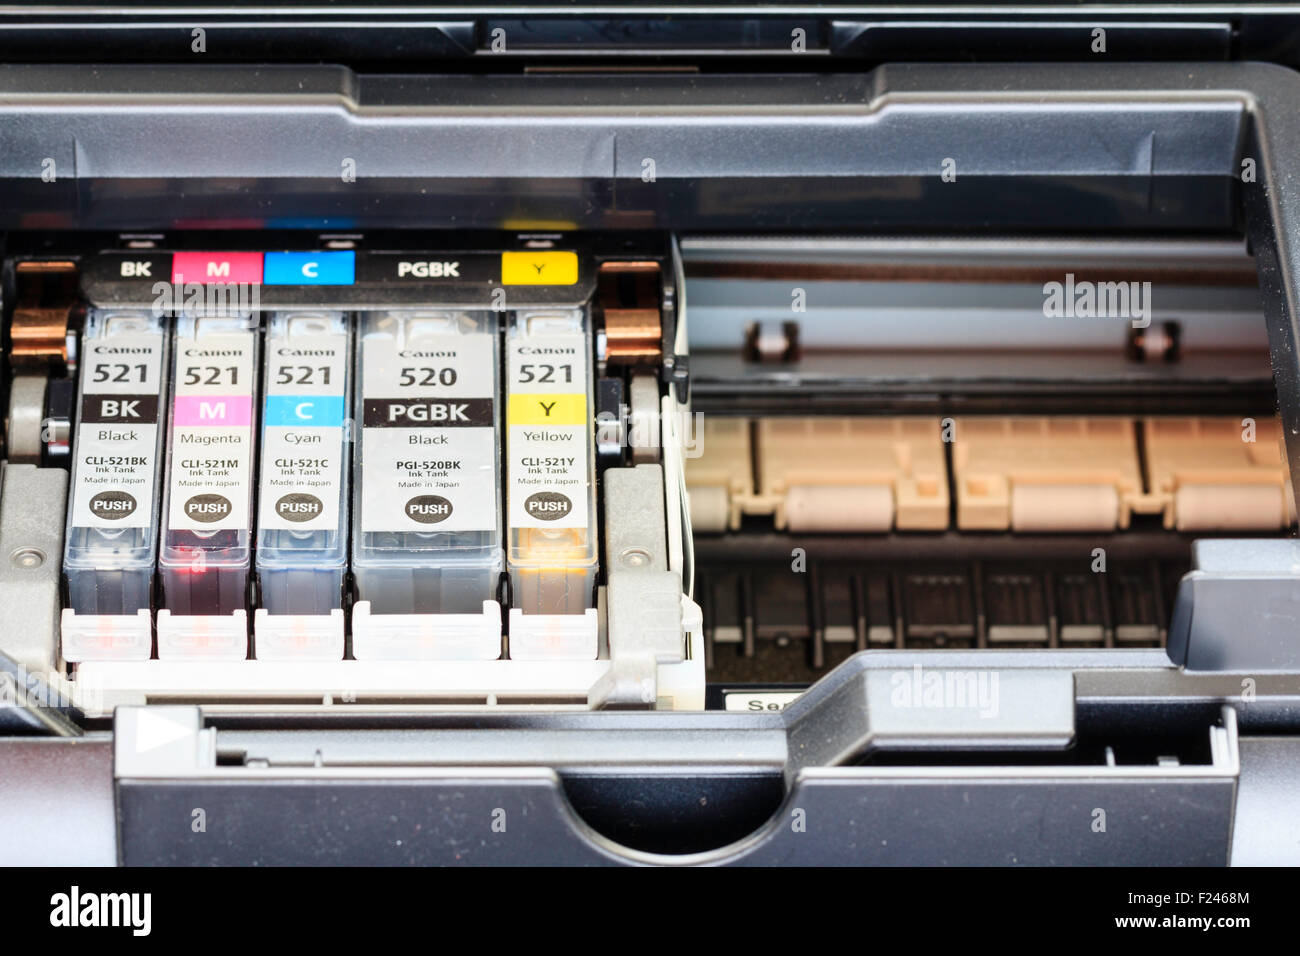 Inkjet Printing Stock Photos & Inkjet Printing Stock Images